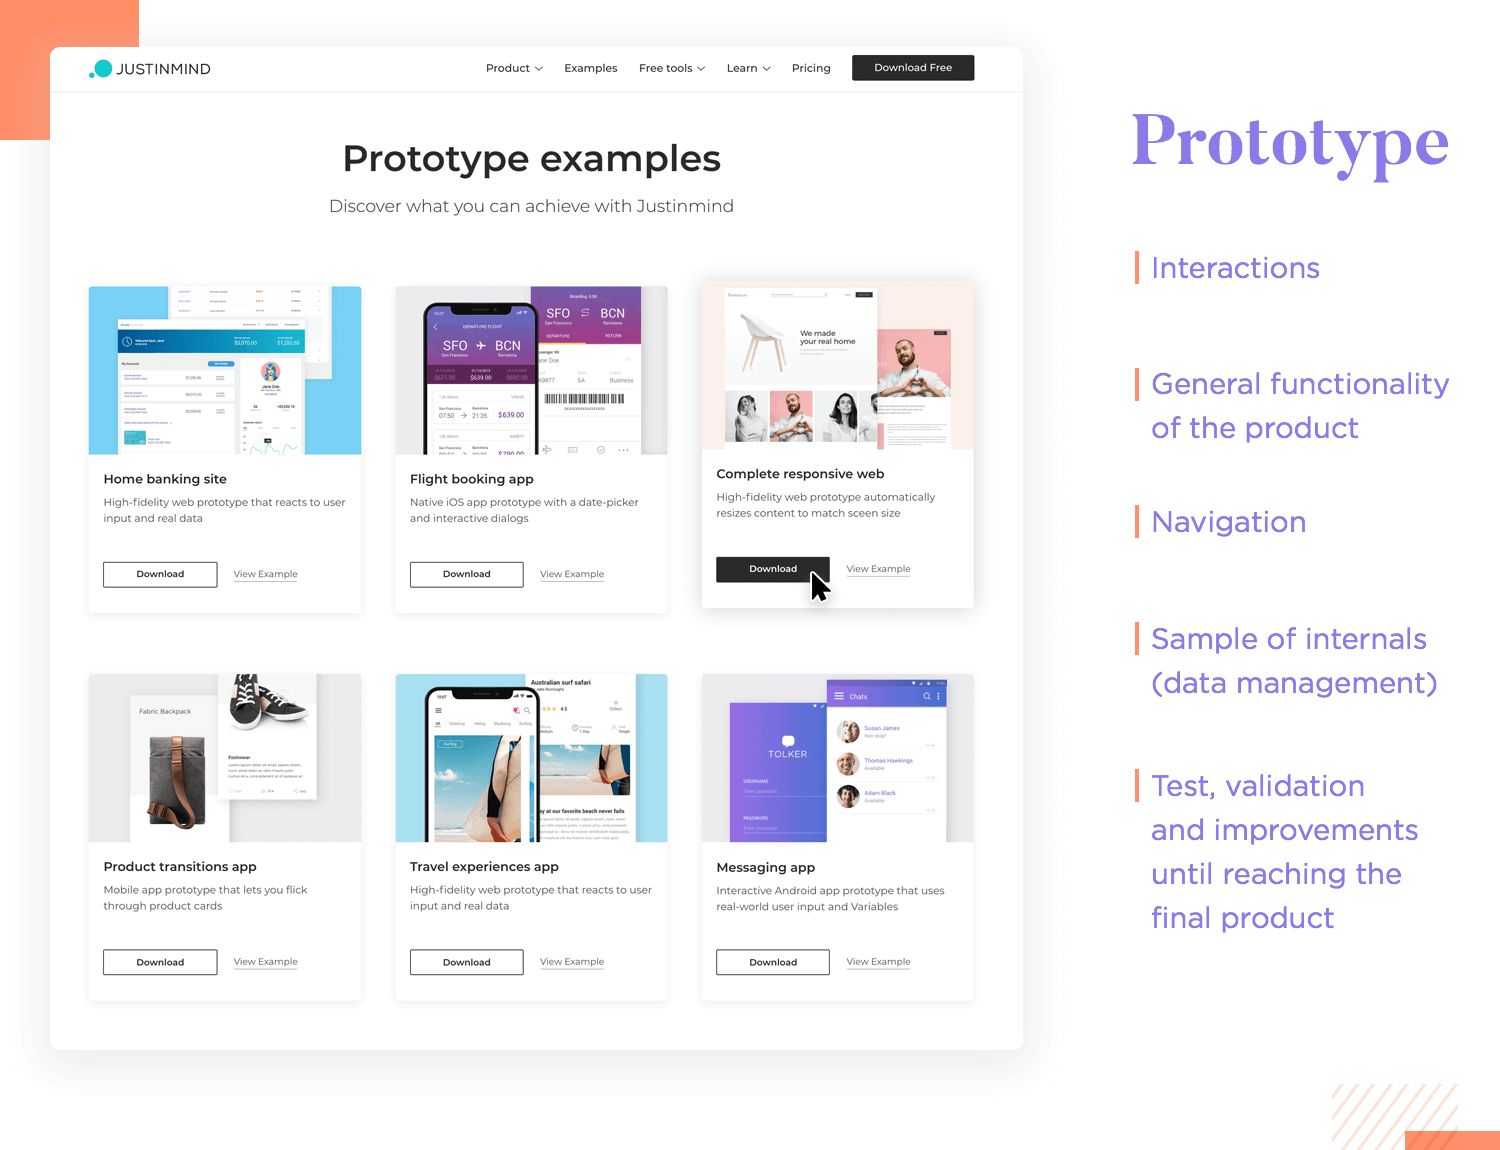 prototyping and interactions as part of ux design